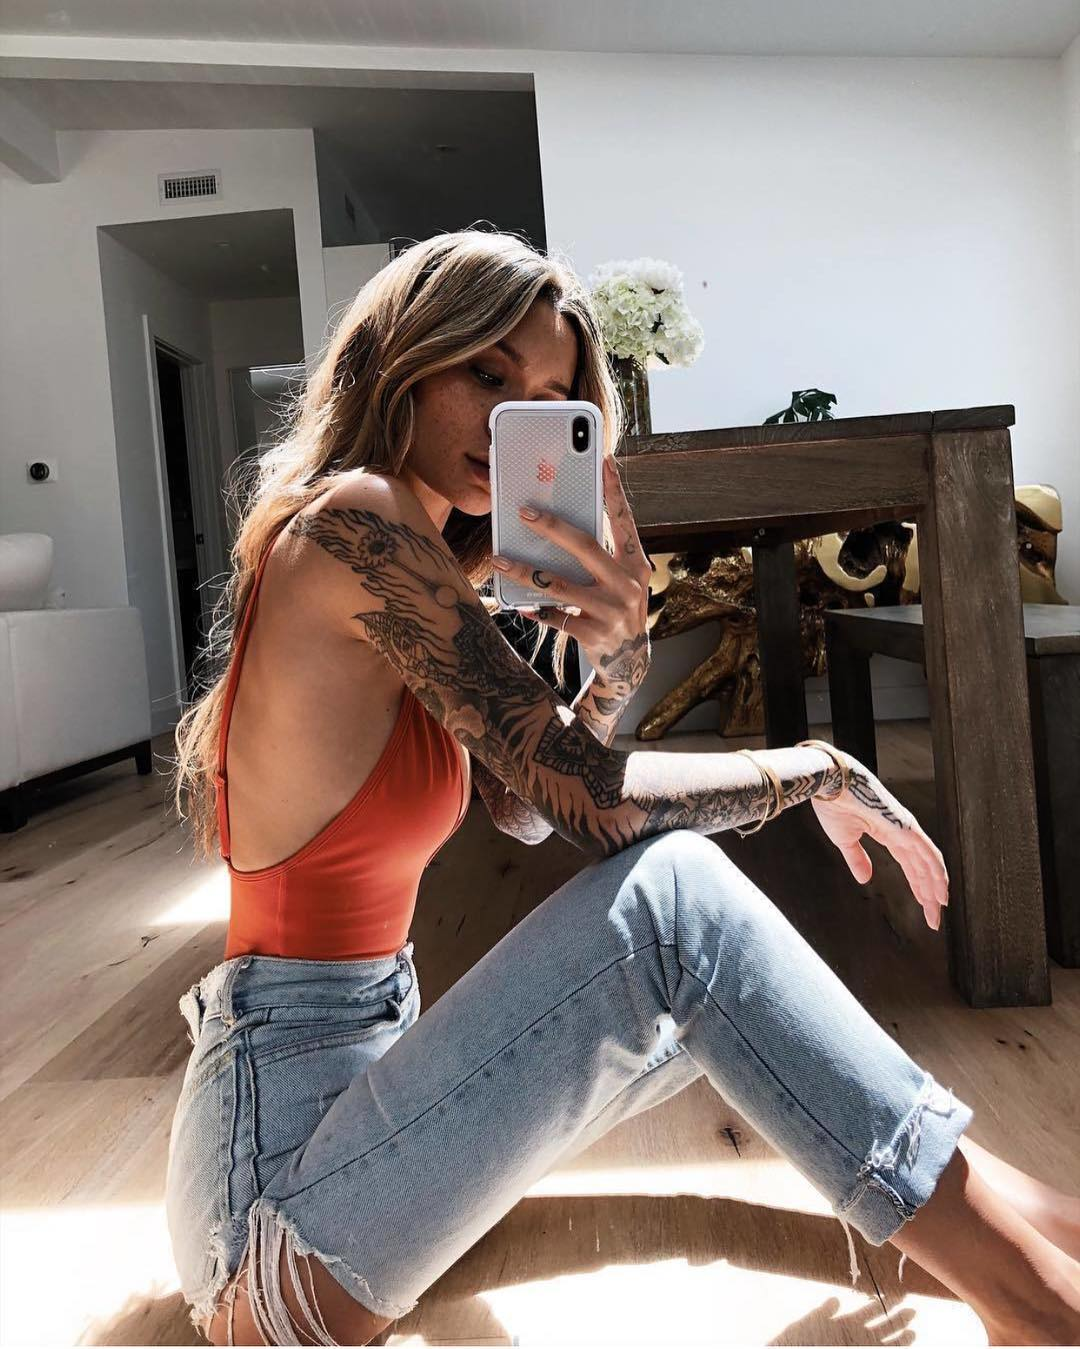 Salmon Red Bodysuit And Blue Ripped Jeans For Summer 2019